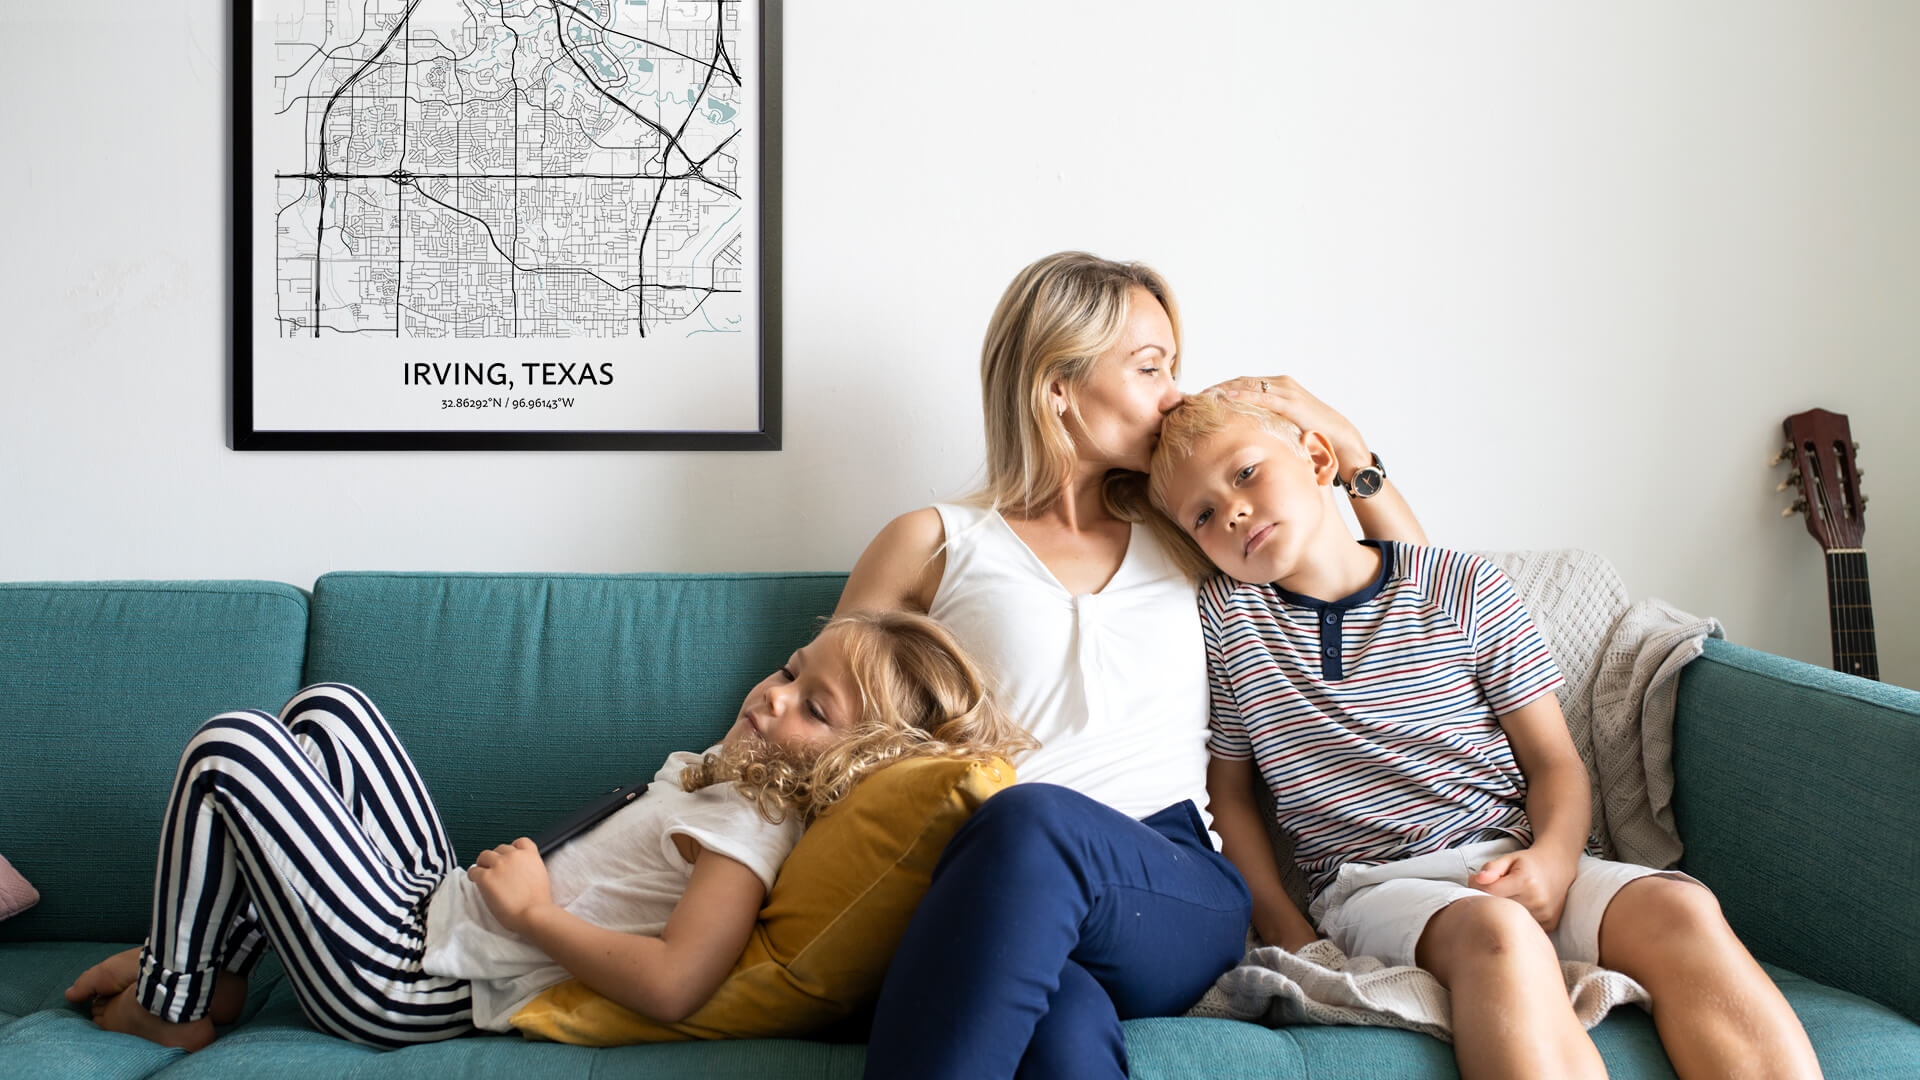 Irving map poster